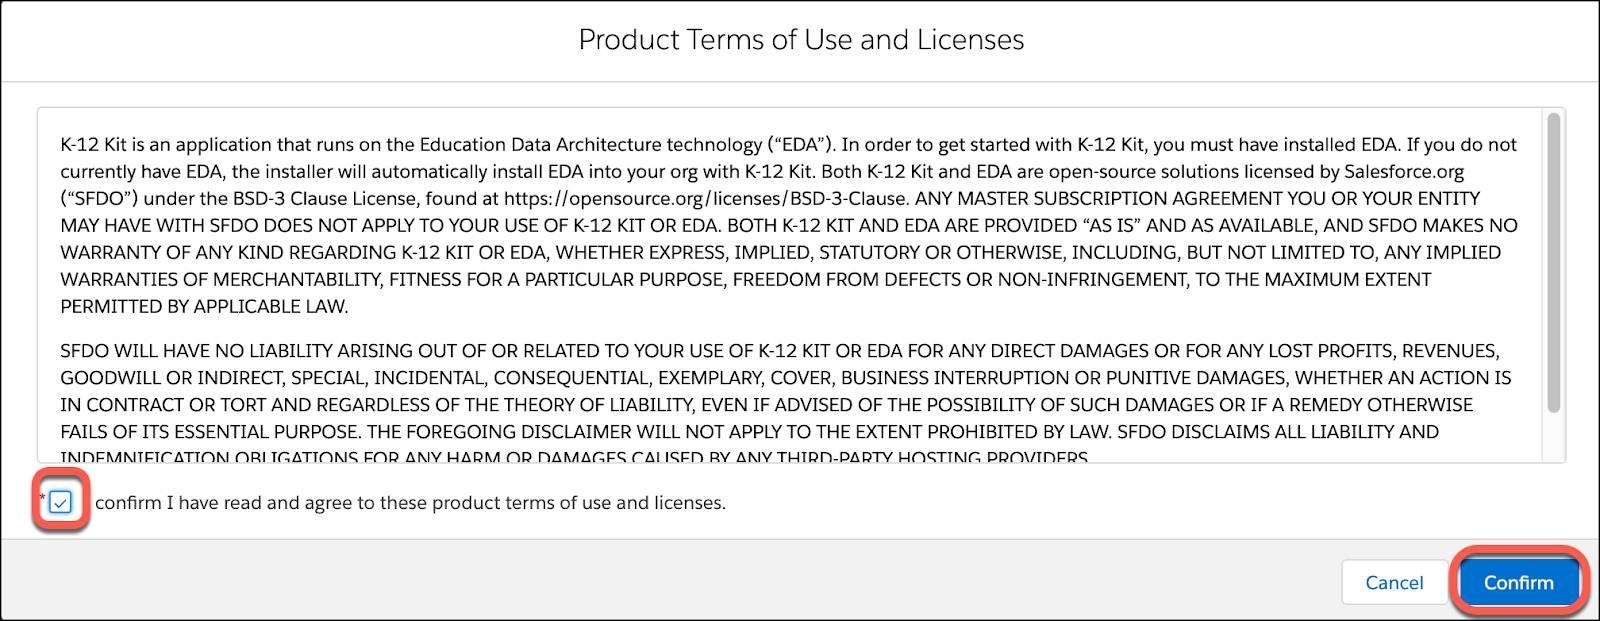 Product Terms of Use and Licenses agreement